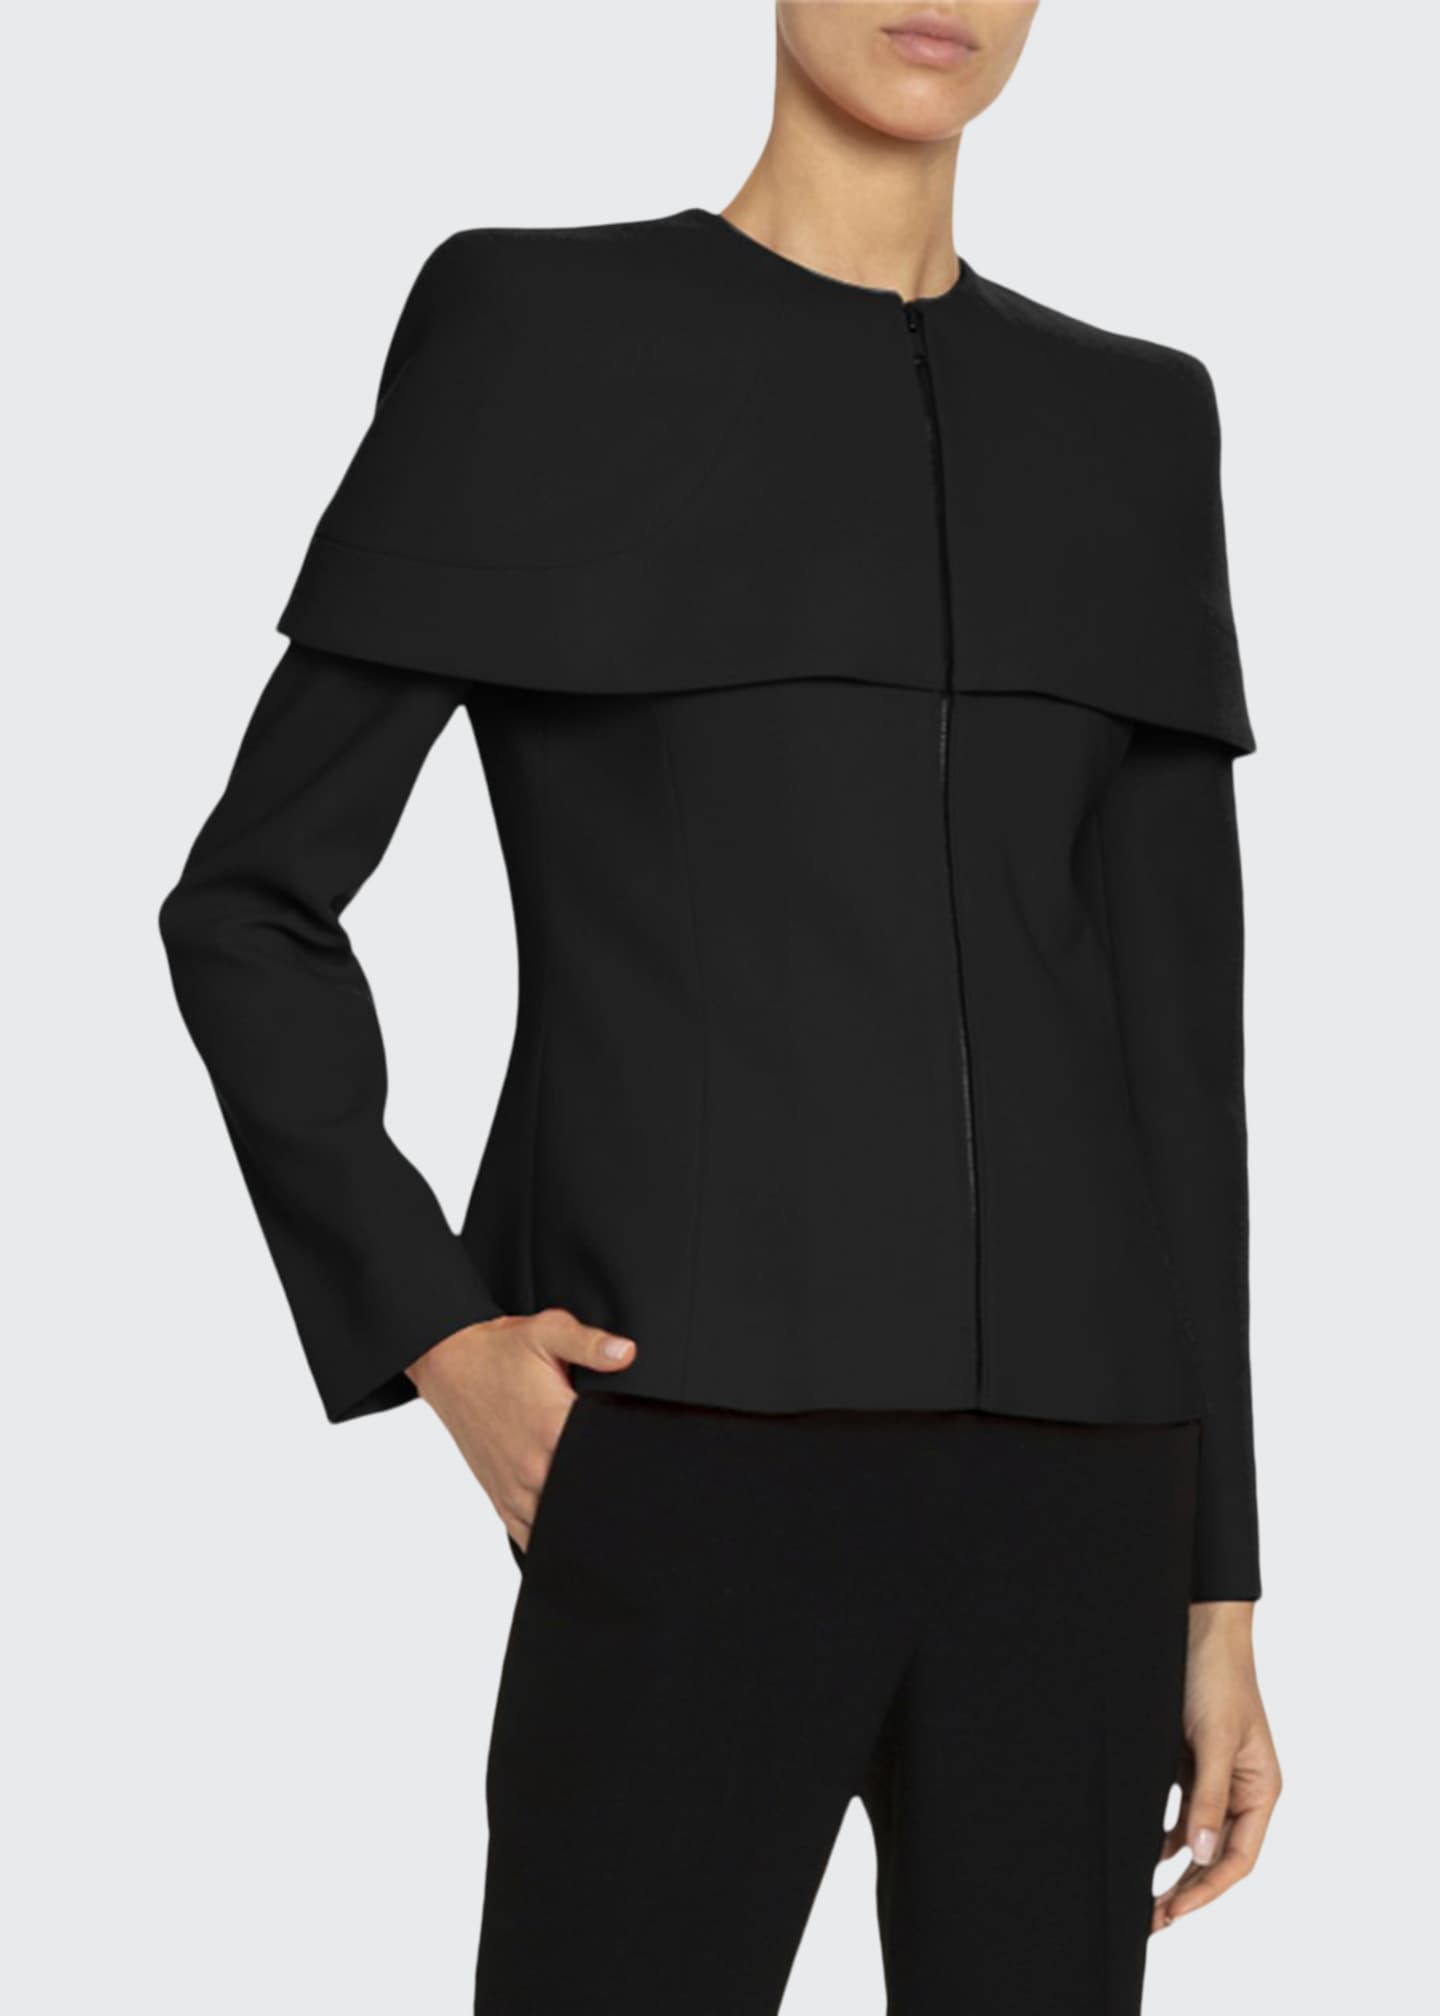 Givenchy Structured-Cape Wool Top